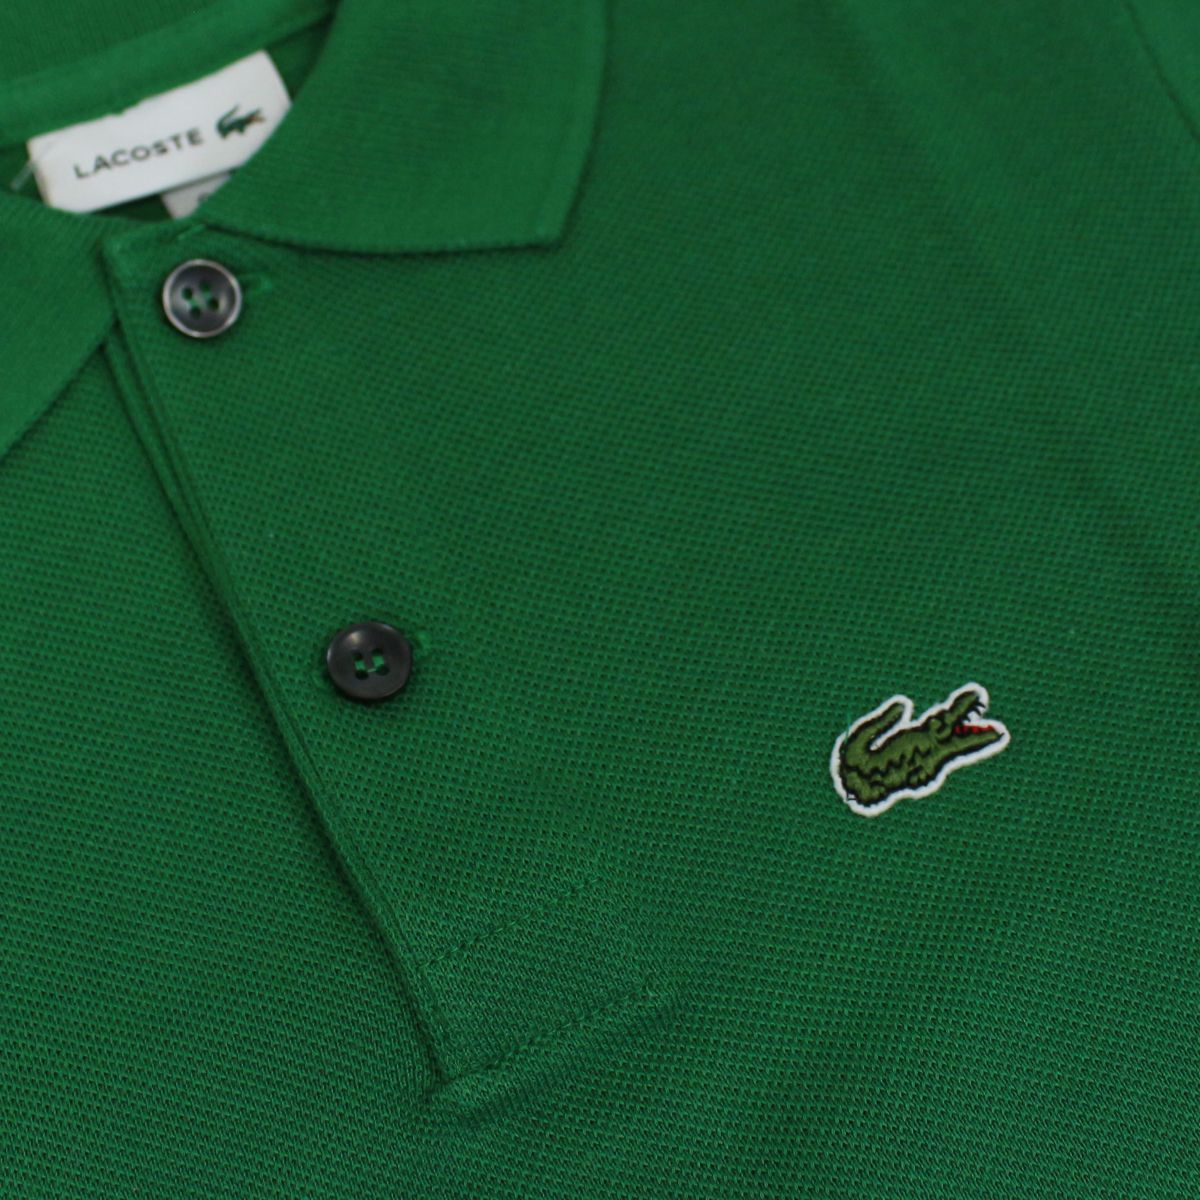 2 button cotton polo shirt Green Lacoste